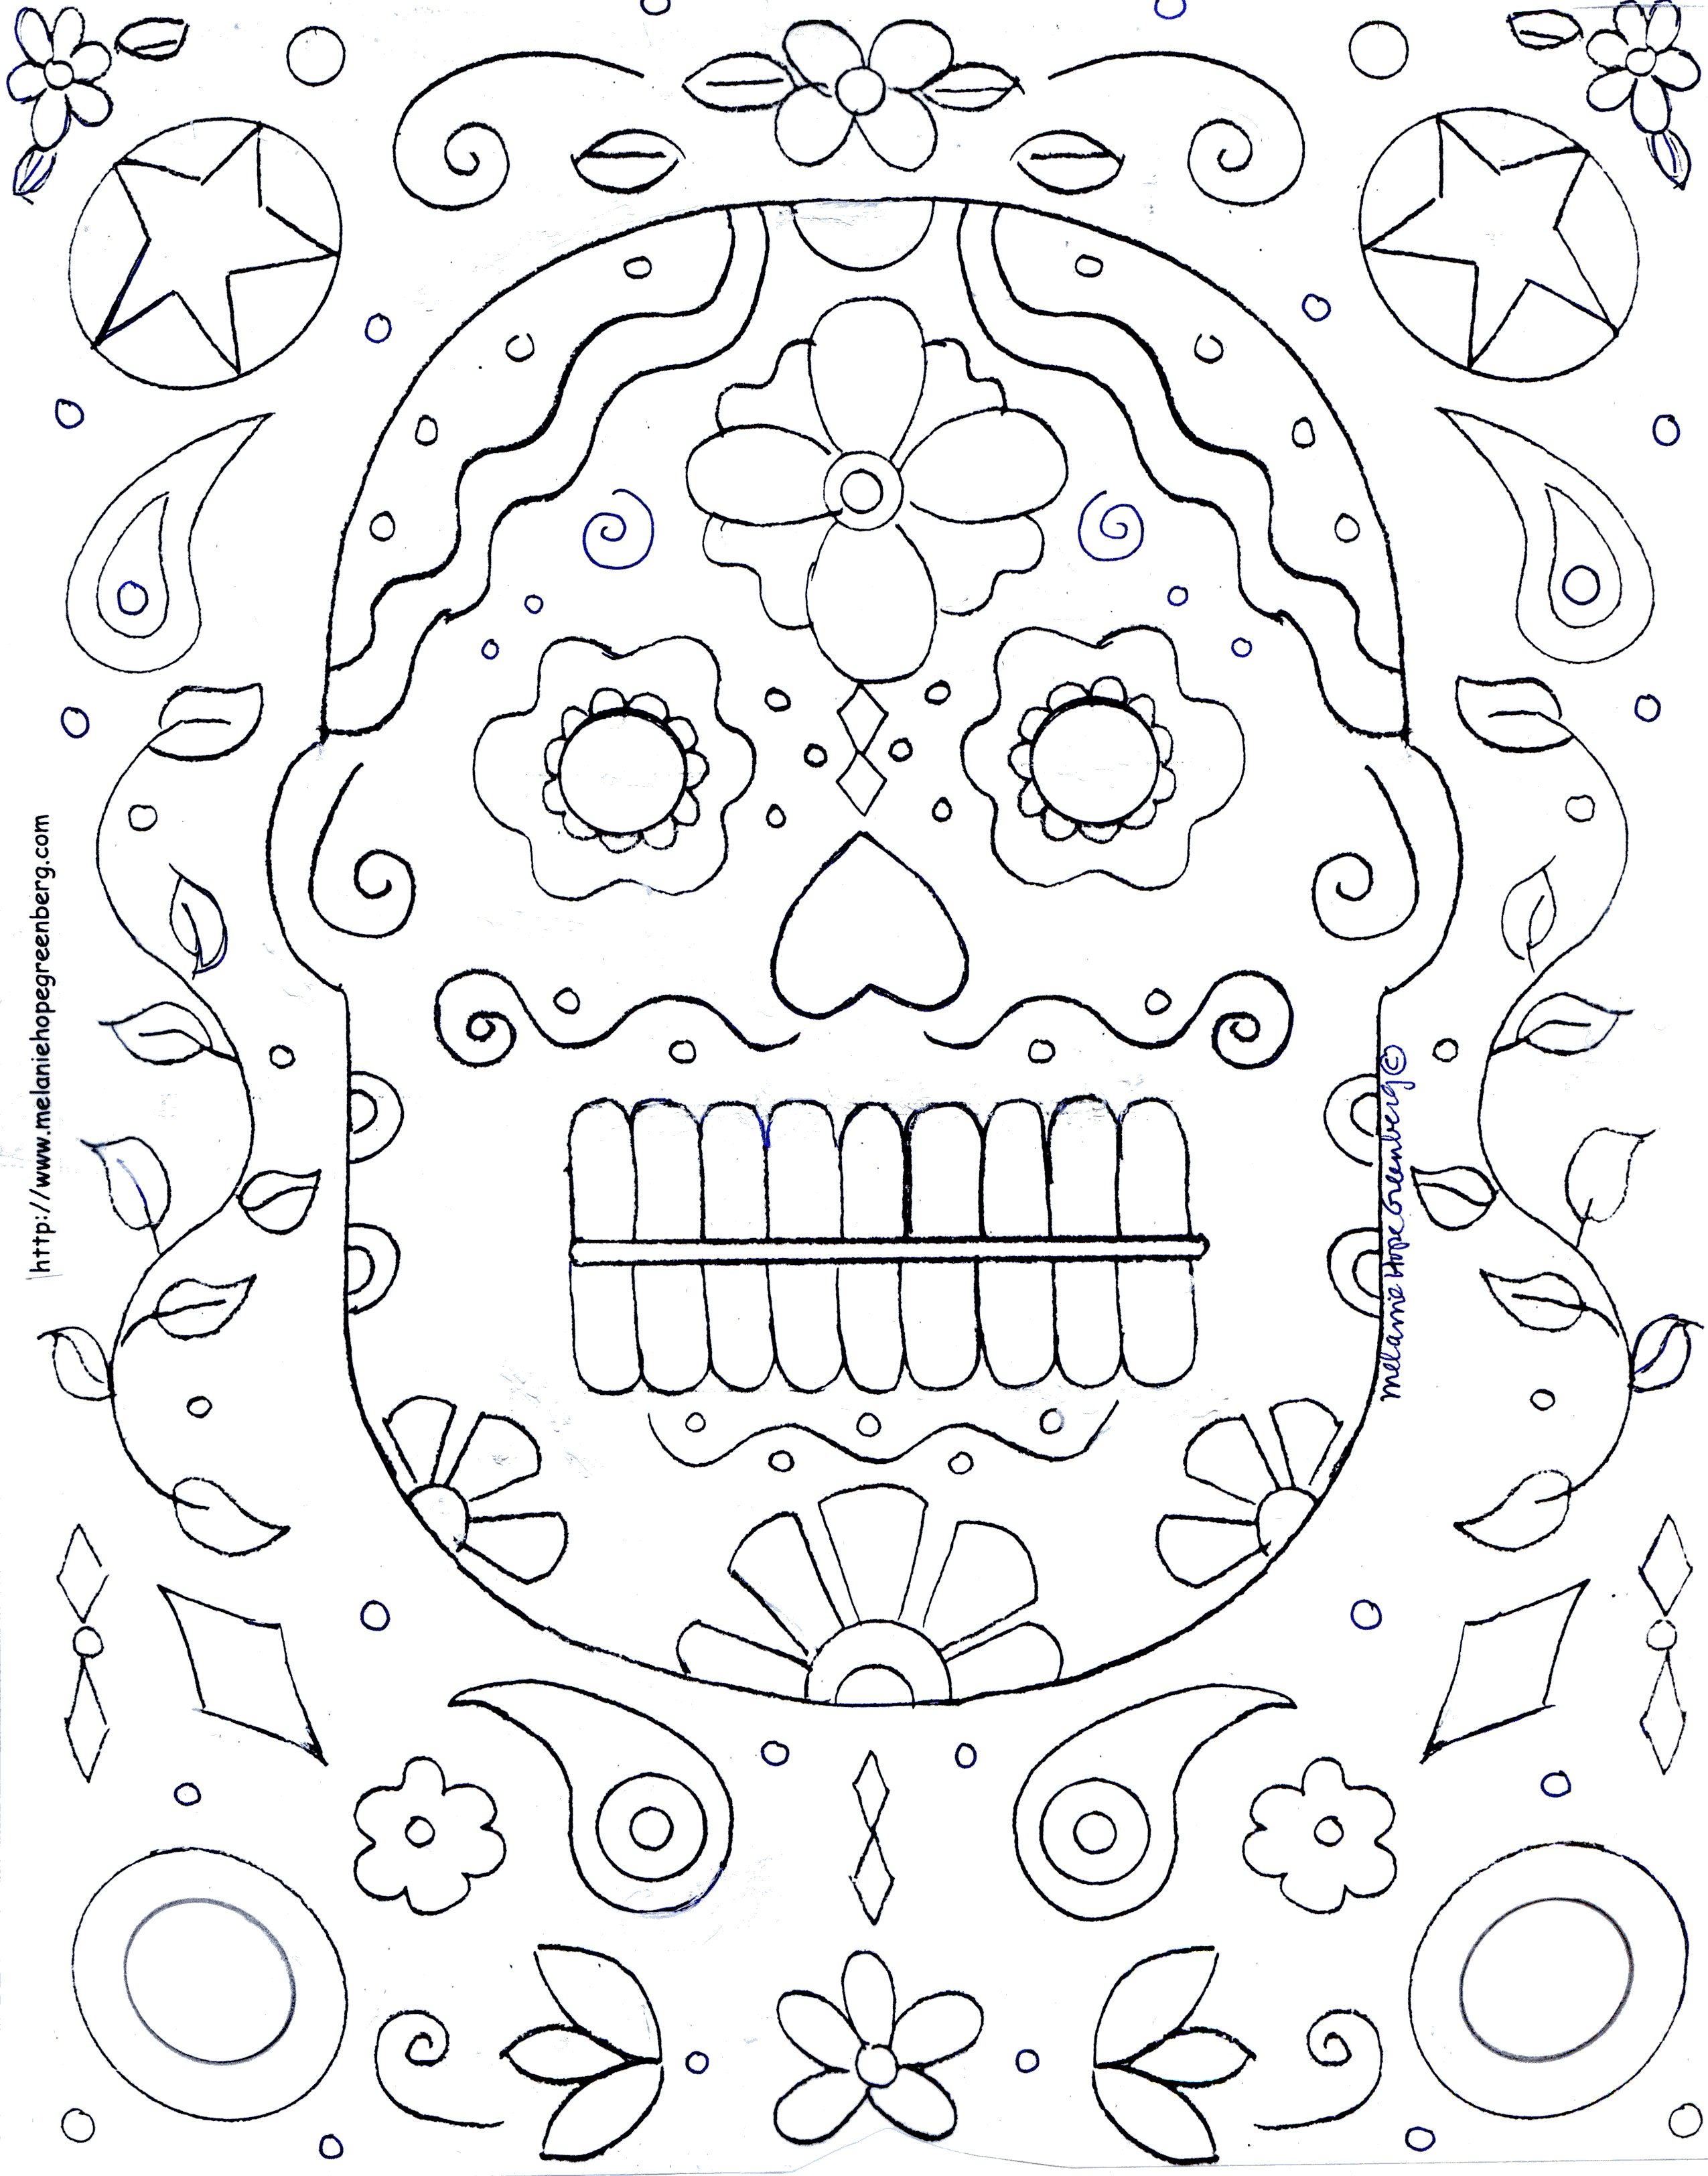 Coloring Printable Images Gallery Category Page 18